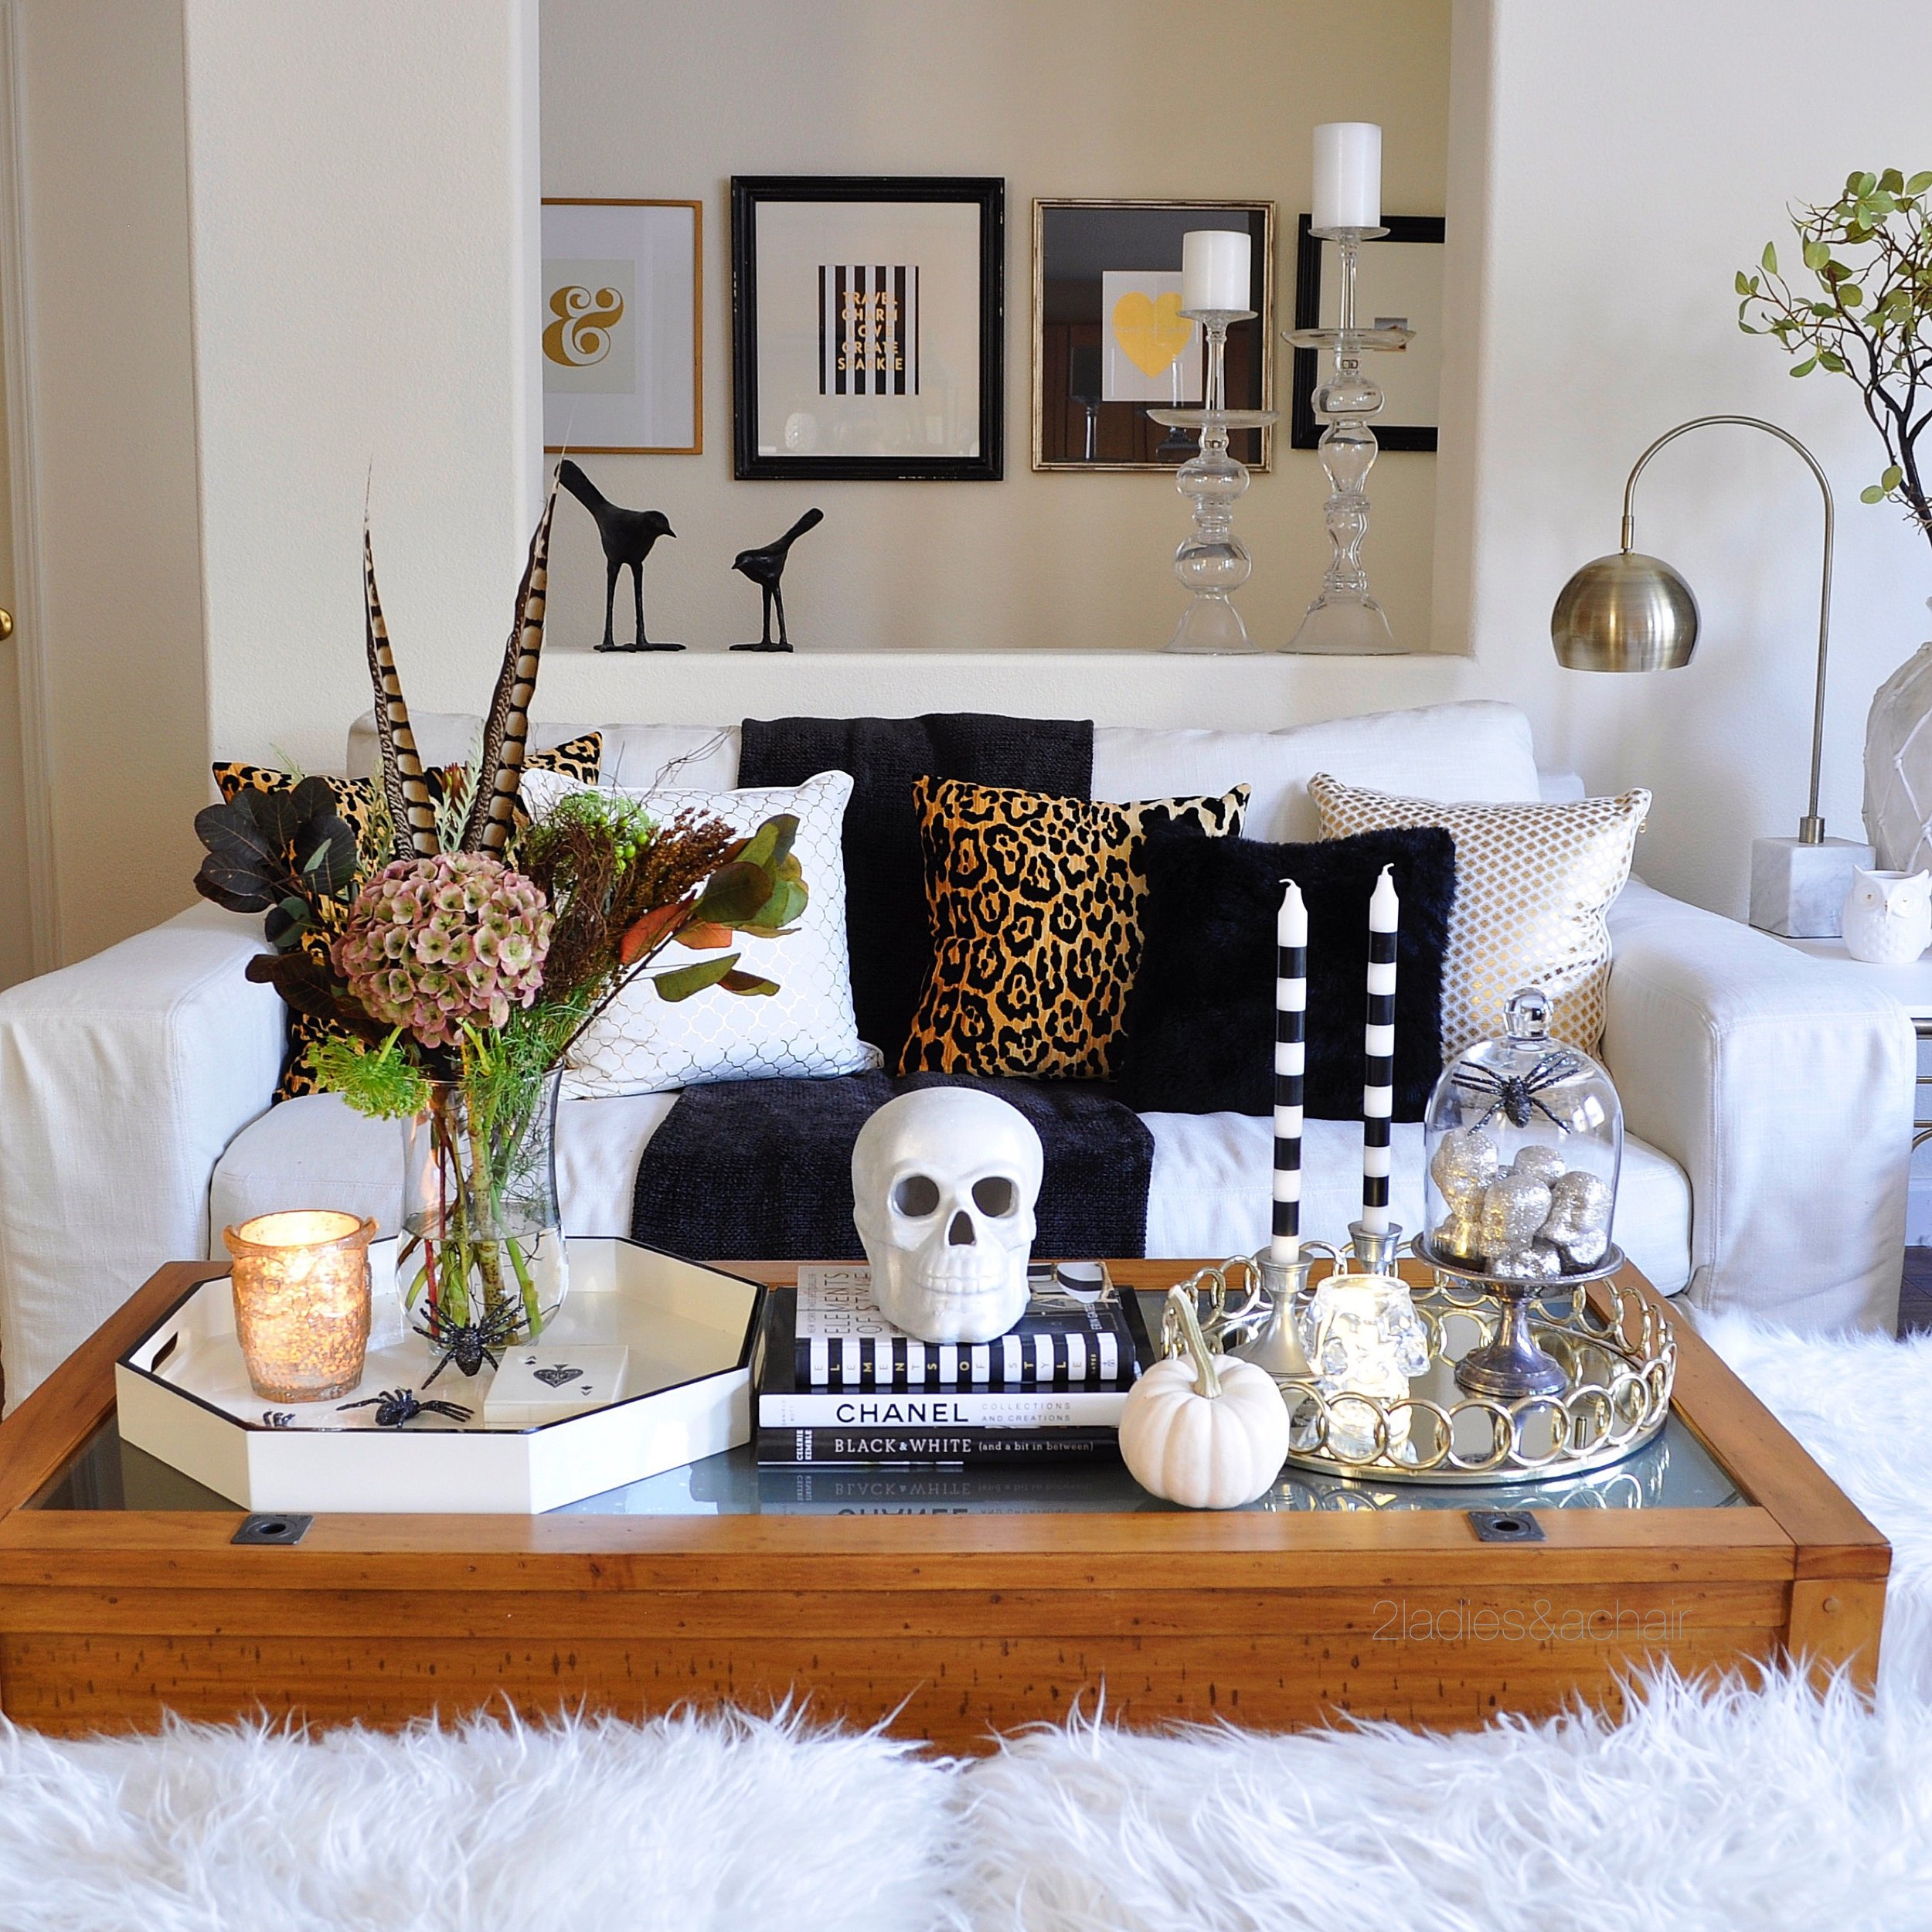 Styling a Coffee Table Halloween — 2 La s & A Chair